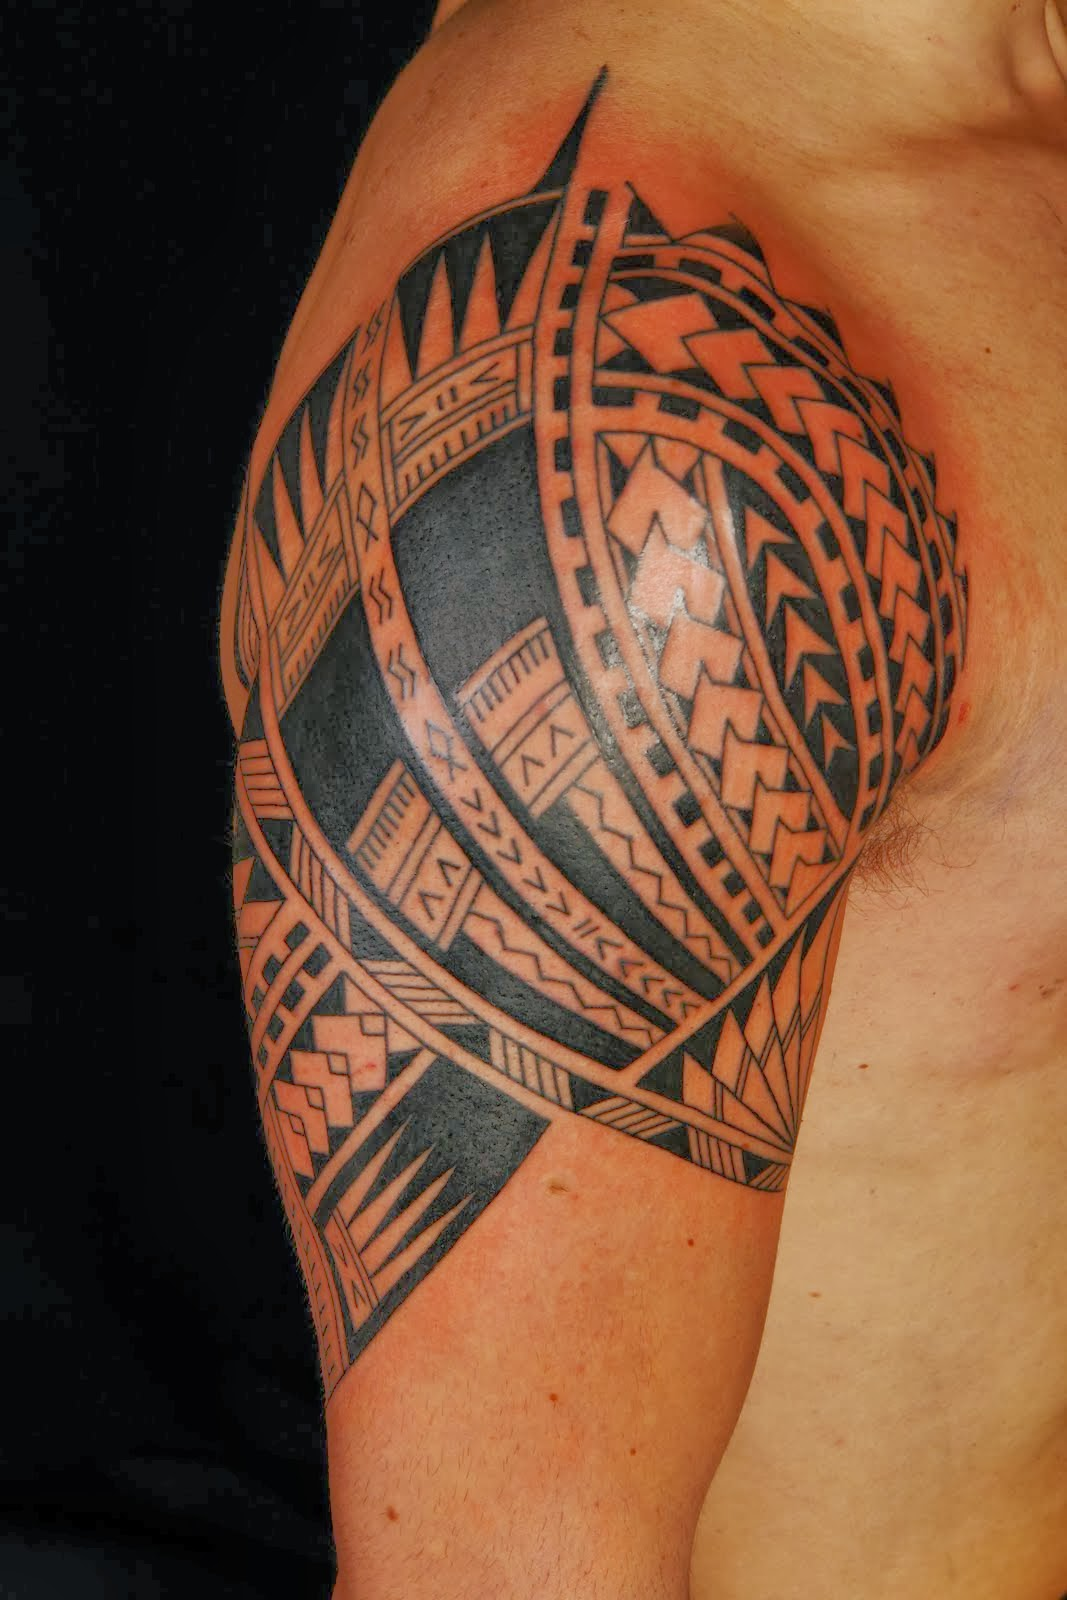 polynesian meanings tattoo tribal design of tattoo requested tattoo is tribal one Polynesian the most